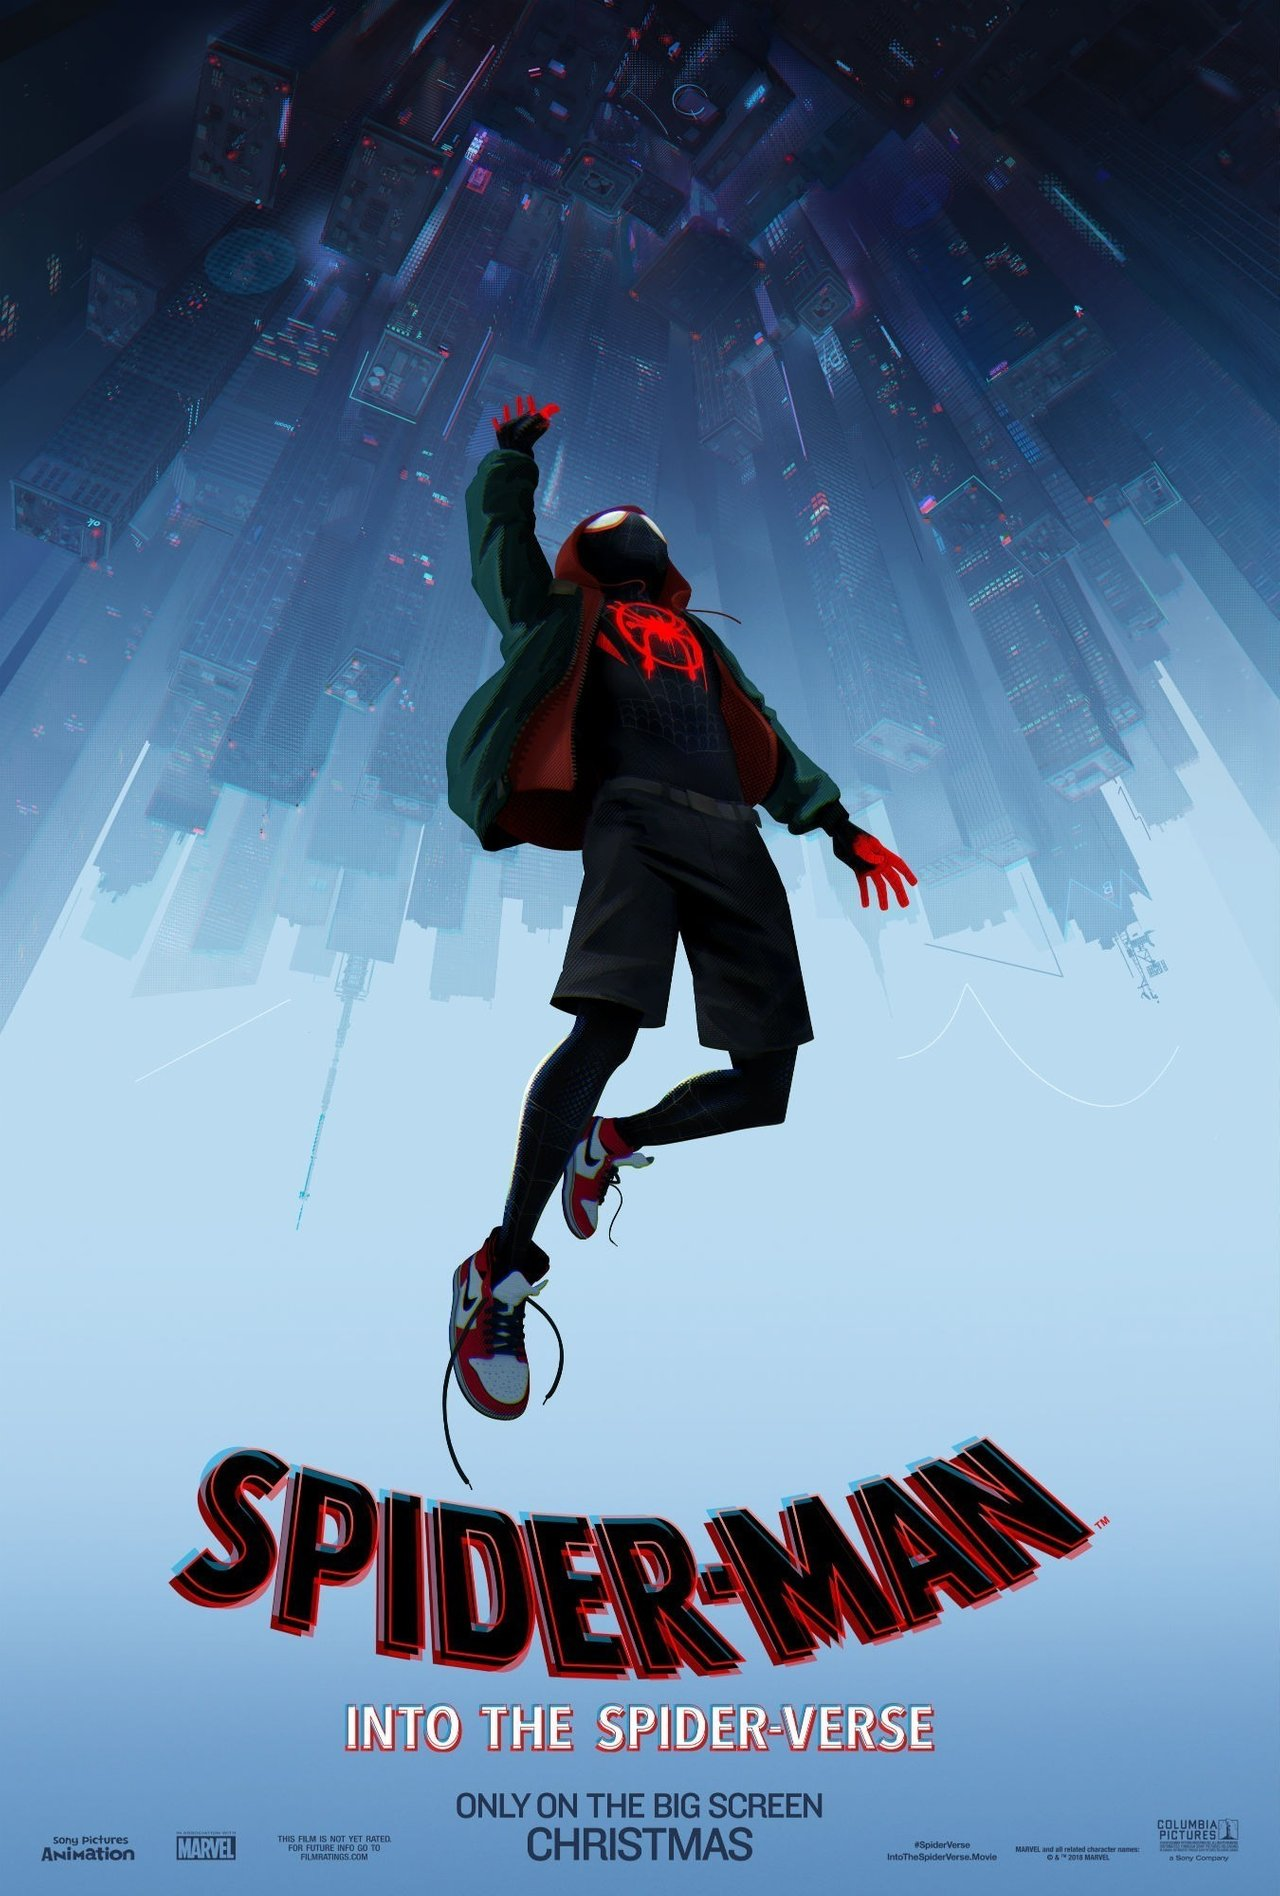 Spider-Man: Into The Spider-Verse (2018) - Directed by: Bob Persichetti, Peter Ramsey, Rodney RothmanStarring: Shameik Moore, Jake Johnson, Hailee Steinfeld, Mahershala Ali, Brian Tyree Henry, Lily Tomlin, Zoe Kravitz, John Mulaney, Nicolas Cage, Liv Schreiber, Chris PineRated: PG for Frenetic Sequences of Animated Action Violence, Thematic Elements, and Mild LanguageRunning Time: 1 h 57 mTMM Score: 5 stars out of 5STRENGTHS: Animation, Story, Meta-Writing, Crazy Freaking VisualsWEAKNESSES: -